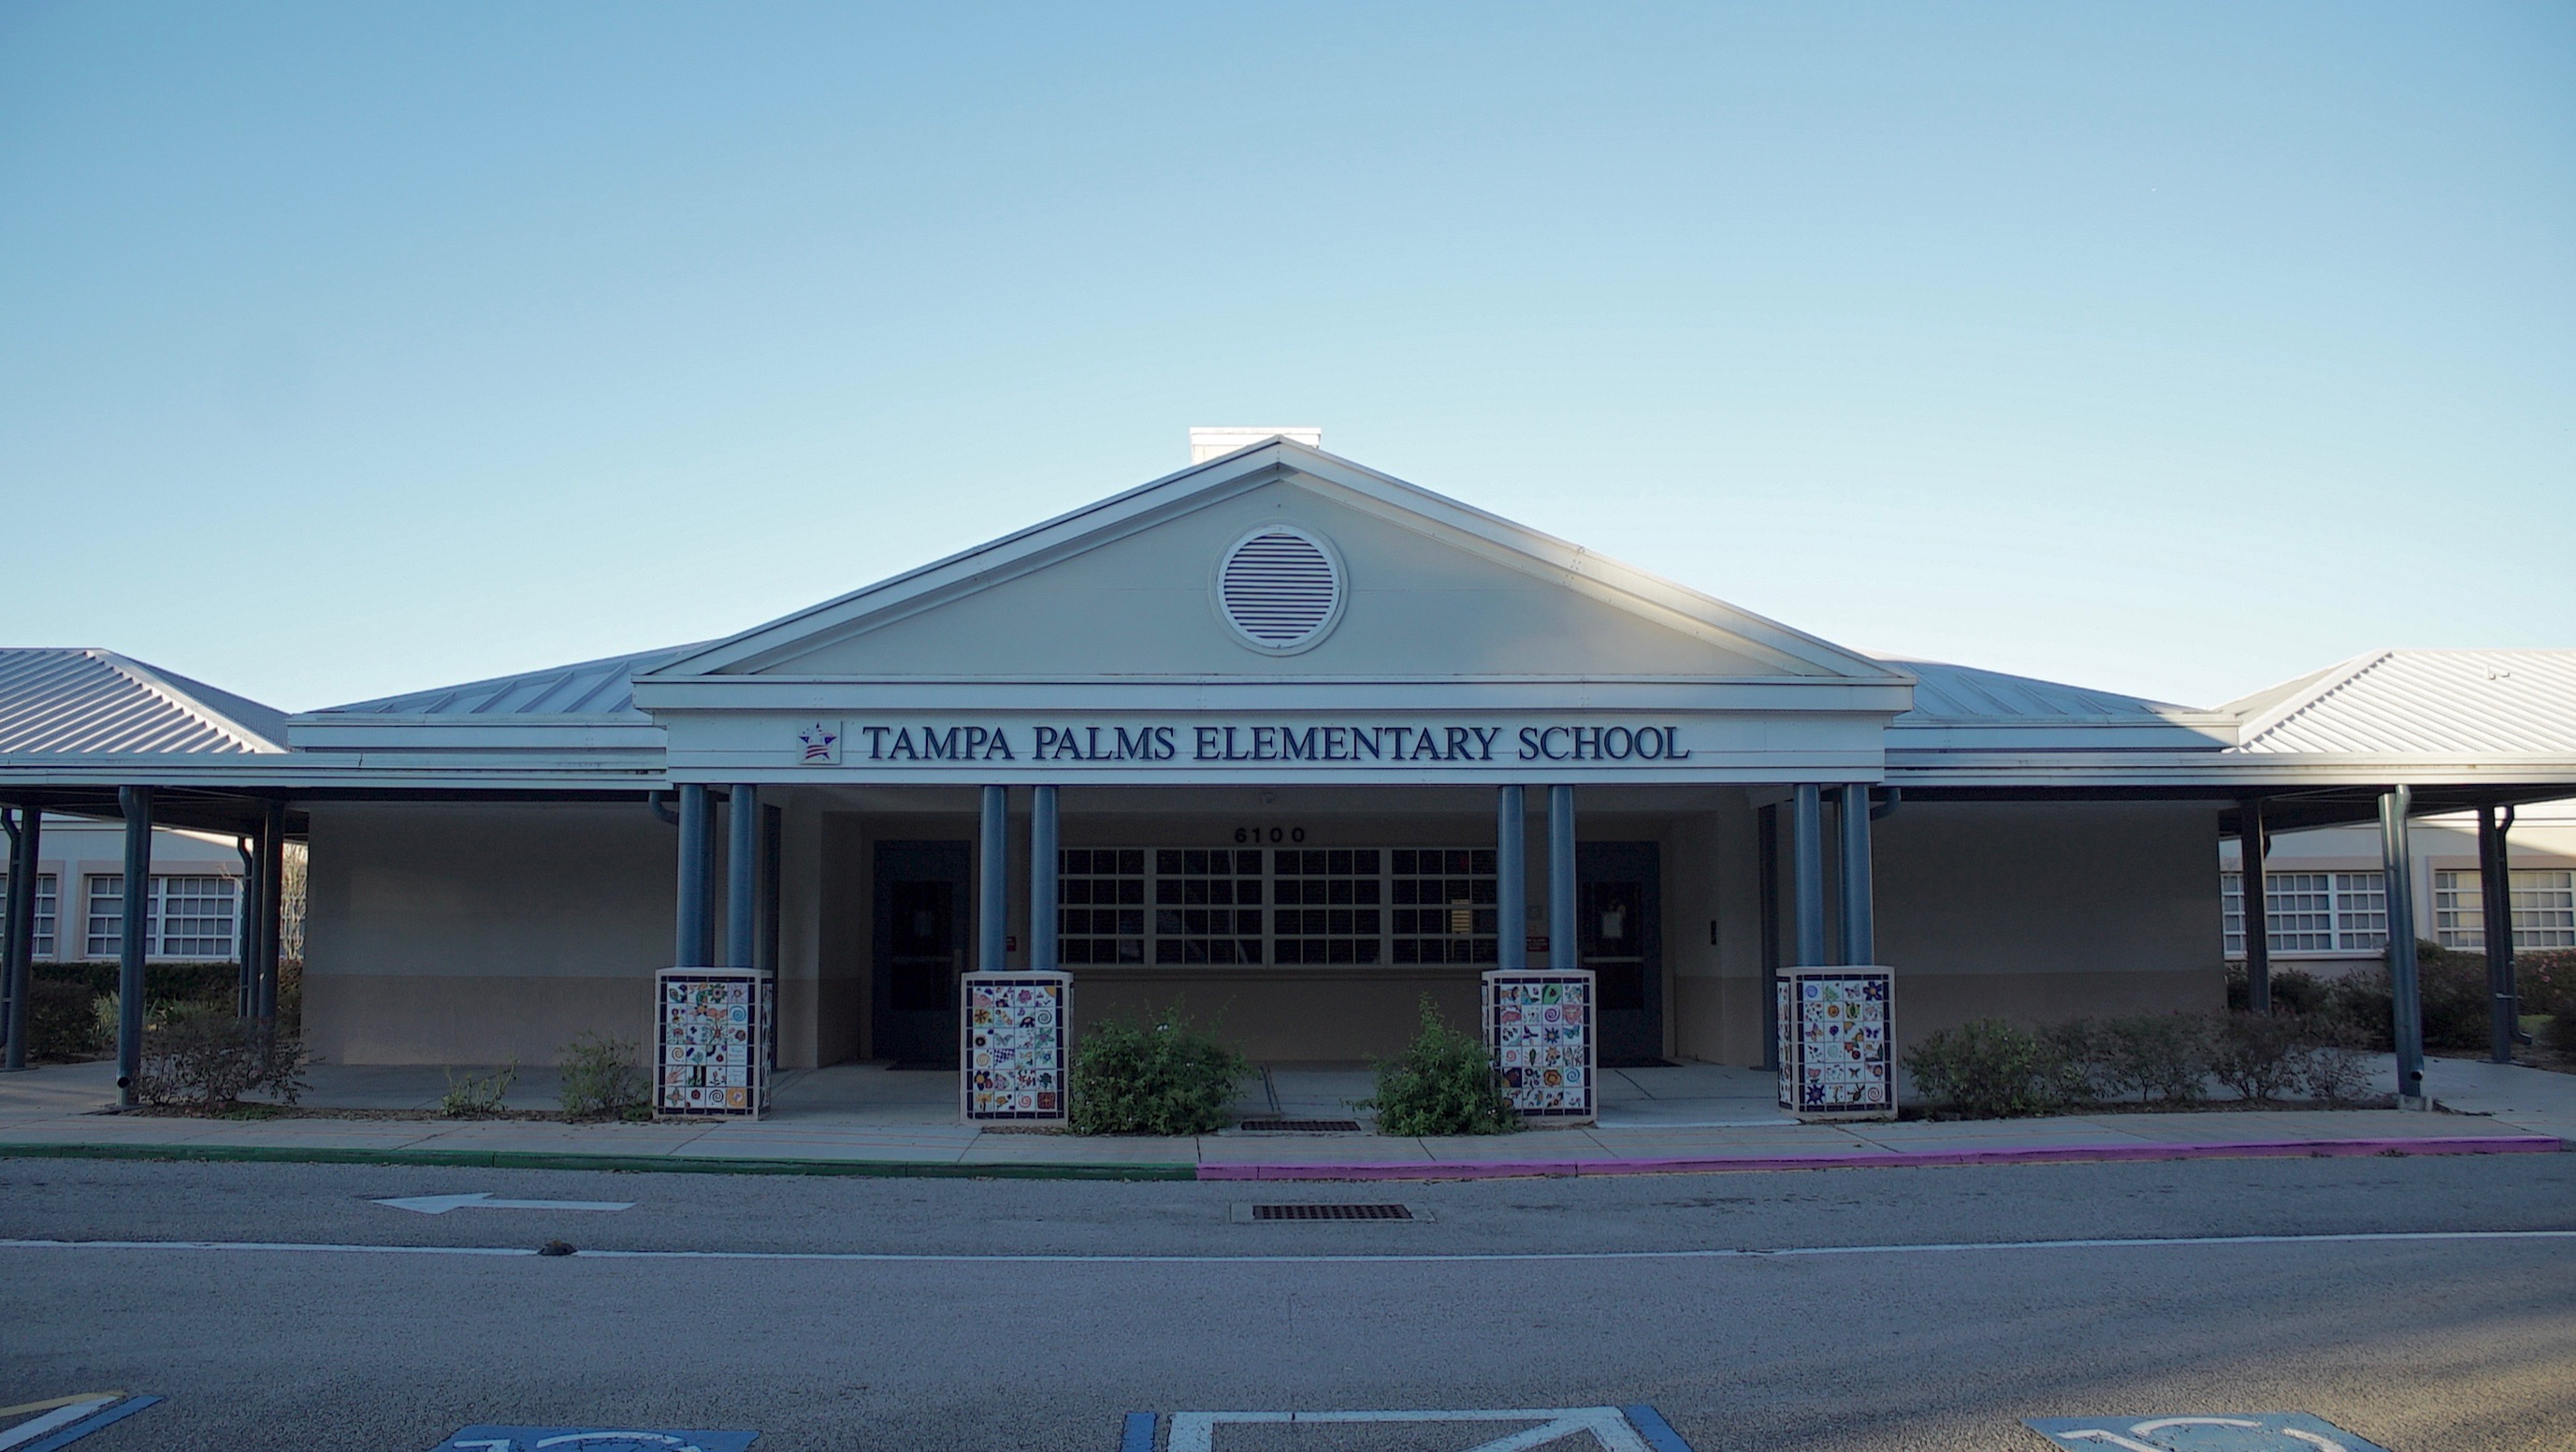 New Tampa Schools Tampa Palms Elementary Coast 2 Coast Realty